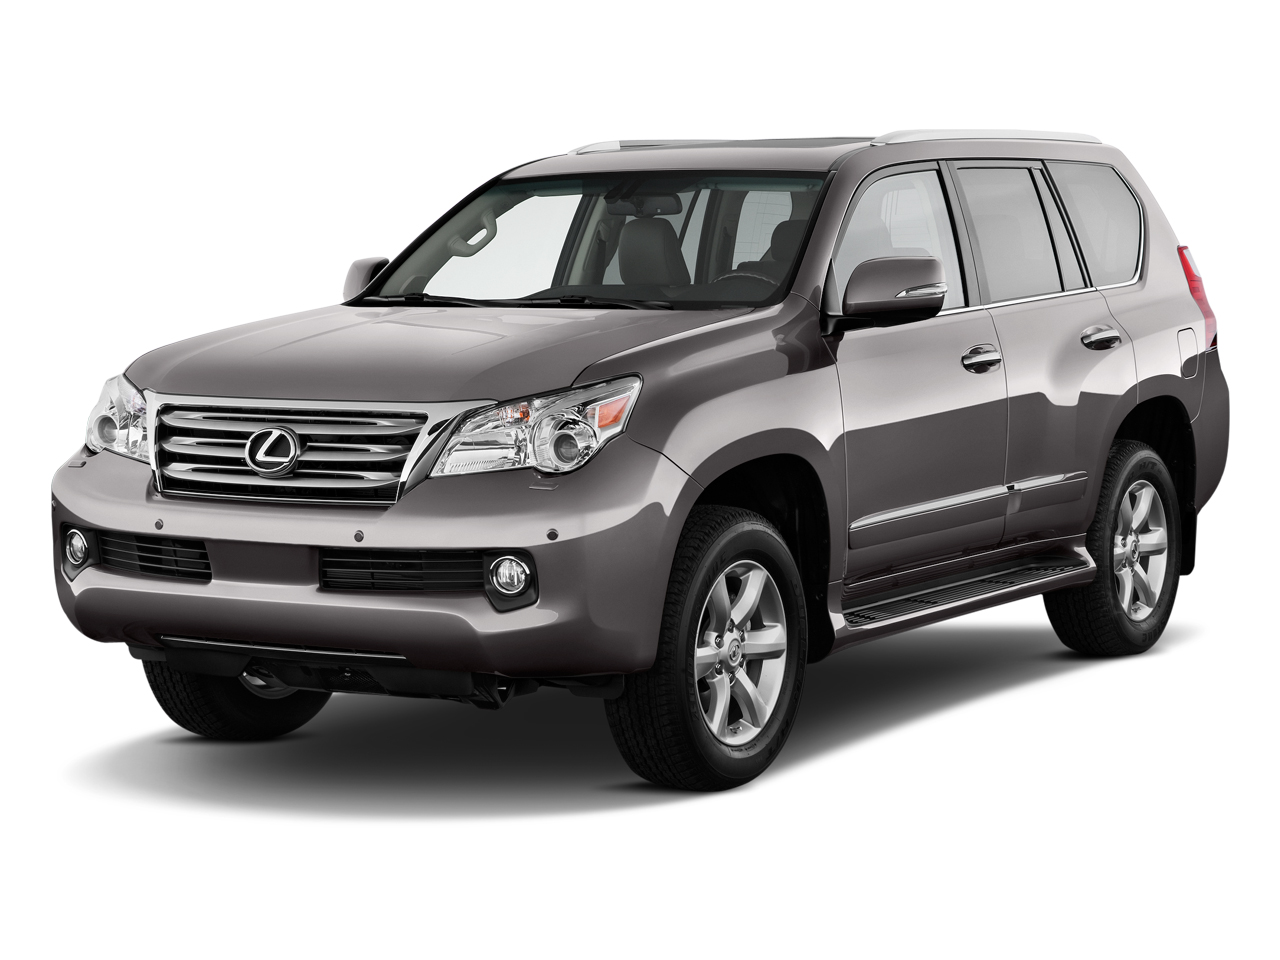 2012 lexus gx 460 review ratings specs prices and photos the car connection. Black Bedroom Furniture Sets. Home Design Ideas